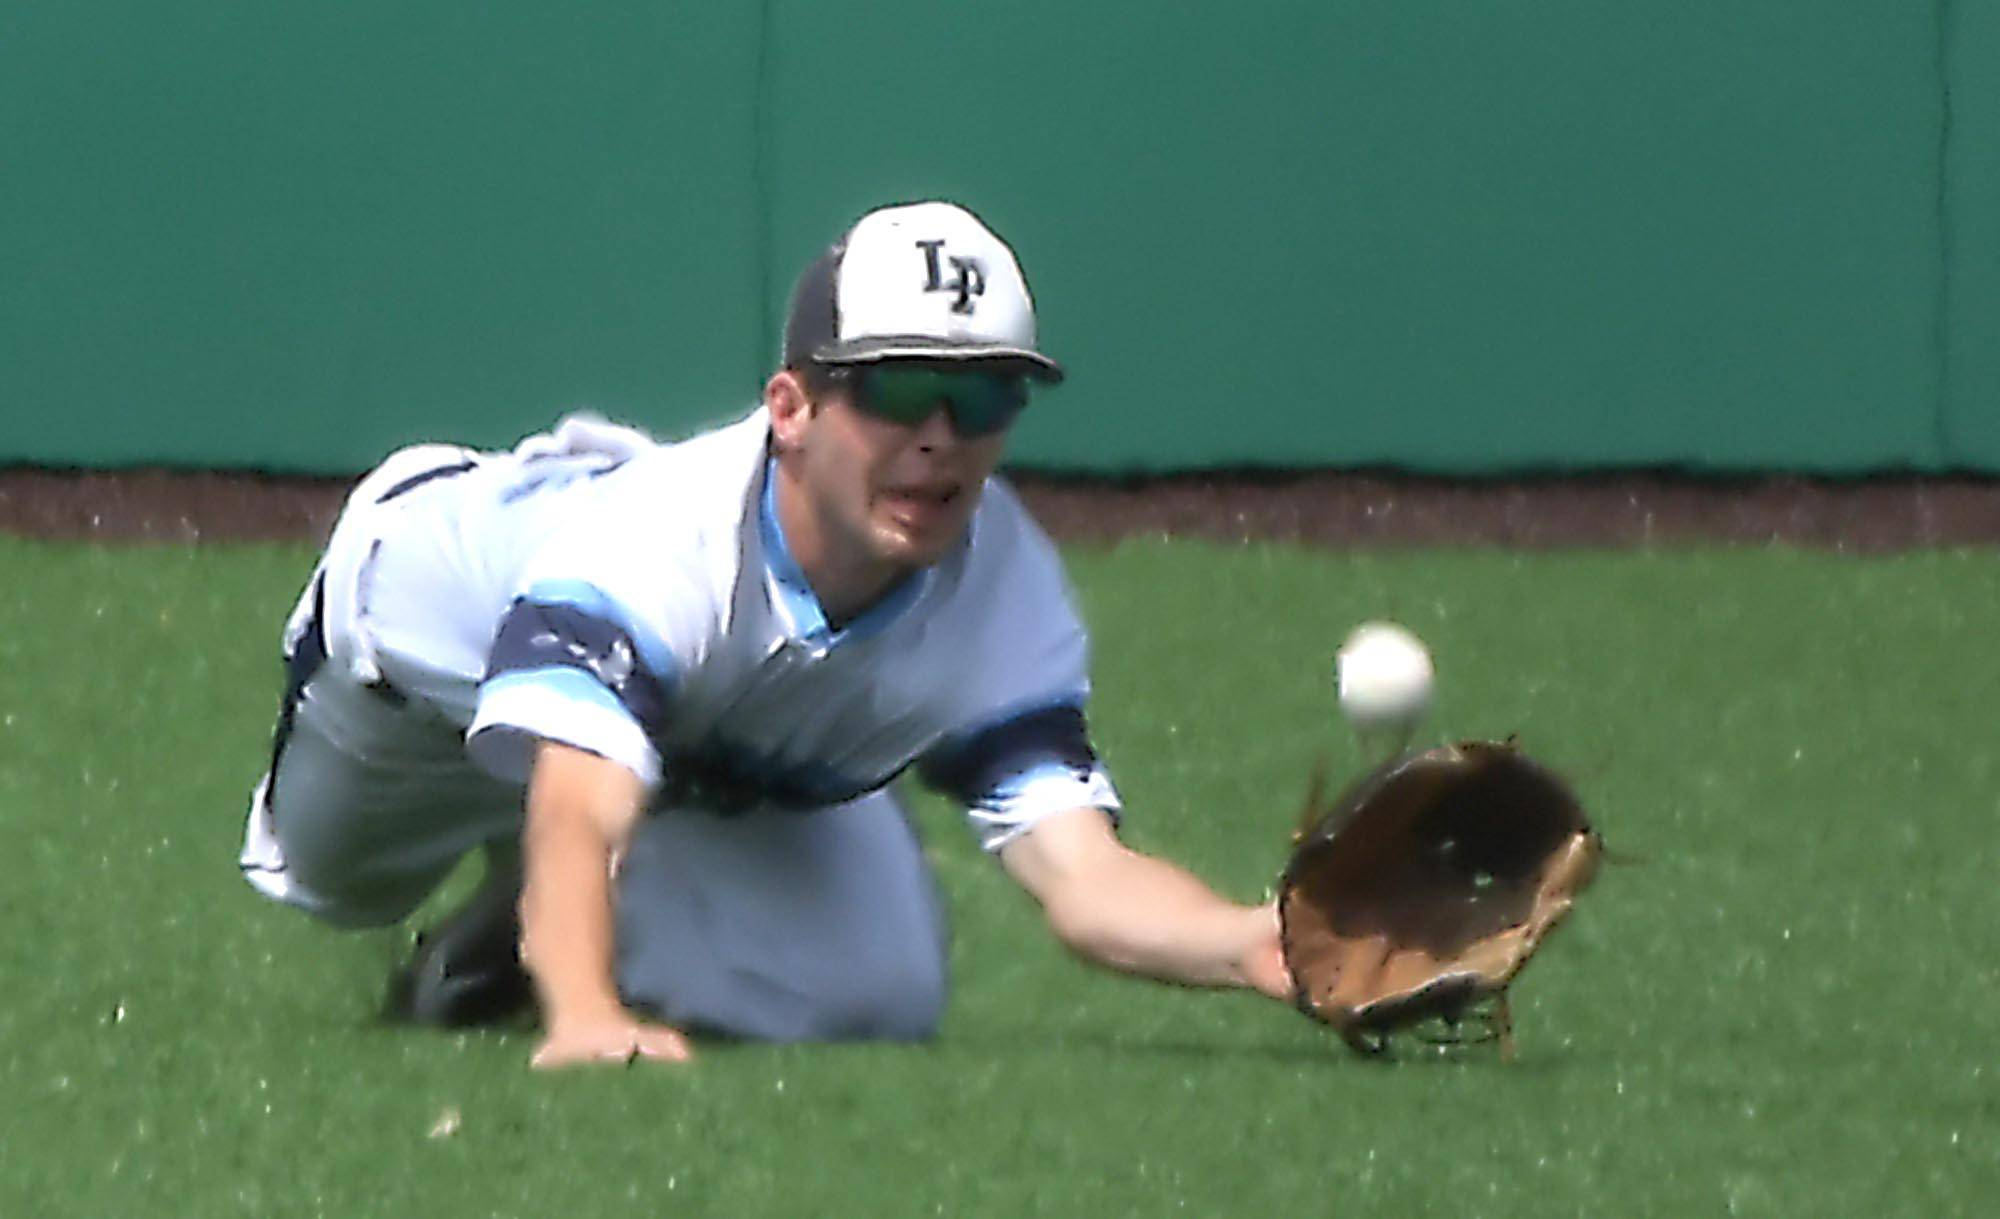 Lake Park centerfielder Eric Brown dives but misses a line drive base hit by Sandburg's Ryan Hampe in the first inning in the Class 4A state baseball third place game at Route 66 Stadium in Joliet Saturday.